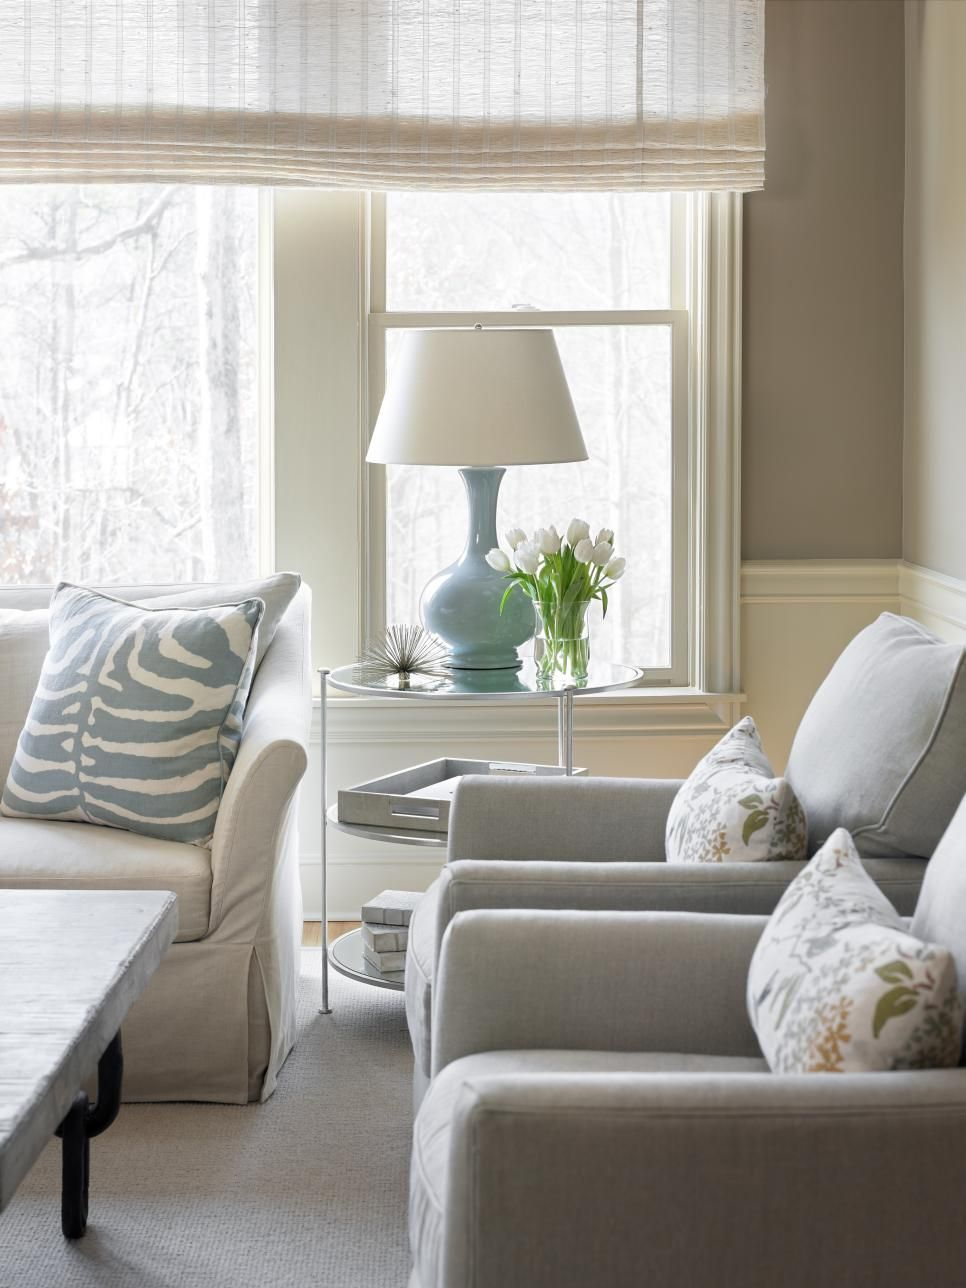 Pictures Of Interior Design Living Rooms: Pale Blue Accents Add Soft, Pretty Touches Of Color To